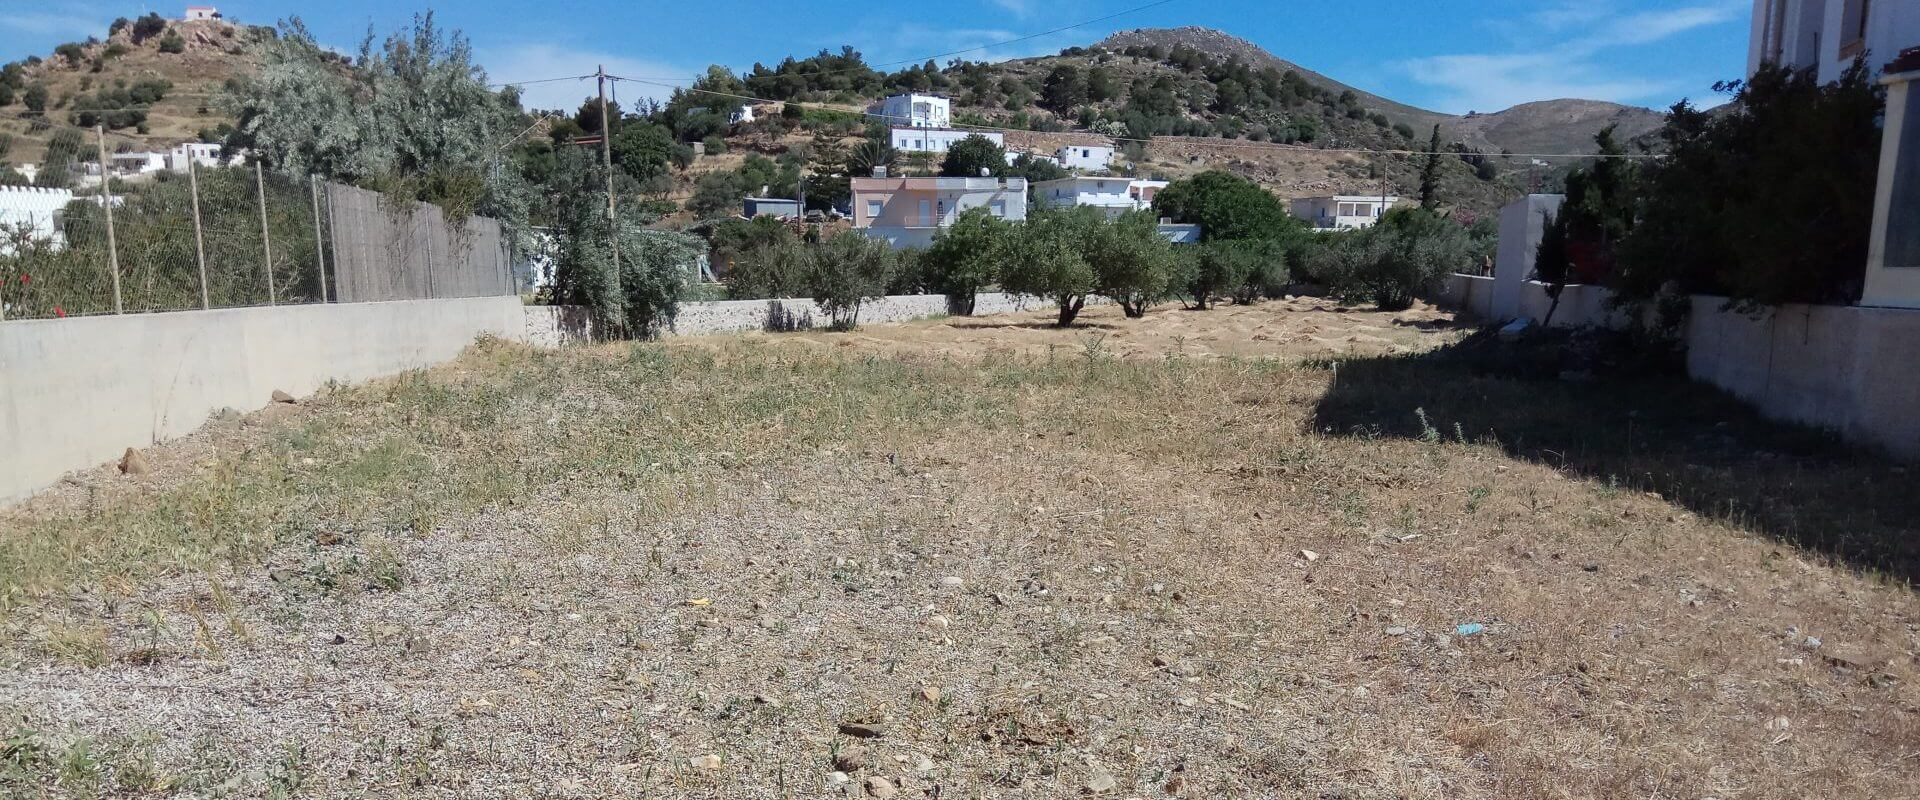 Seaside plot in Leros island L367